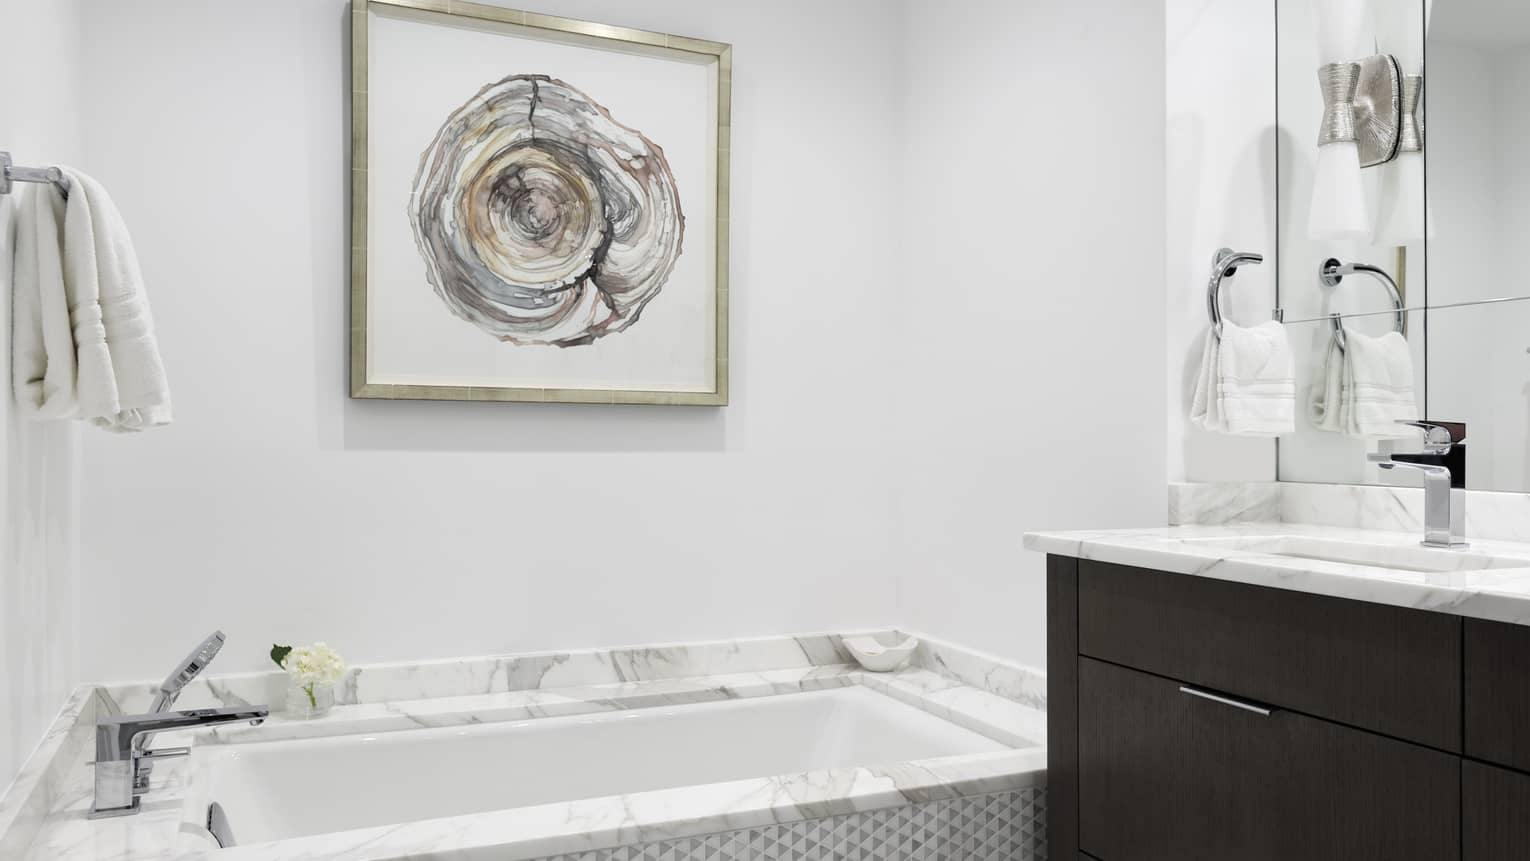 Bathroom with marble tub, artwork on wall, marble vanity